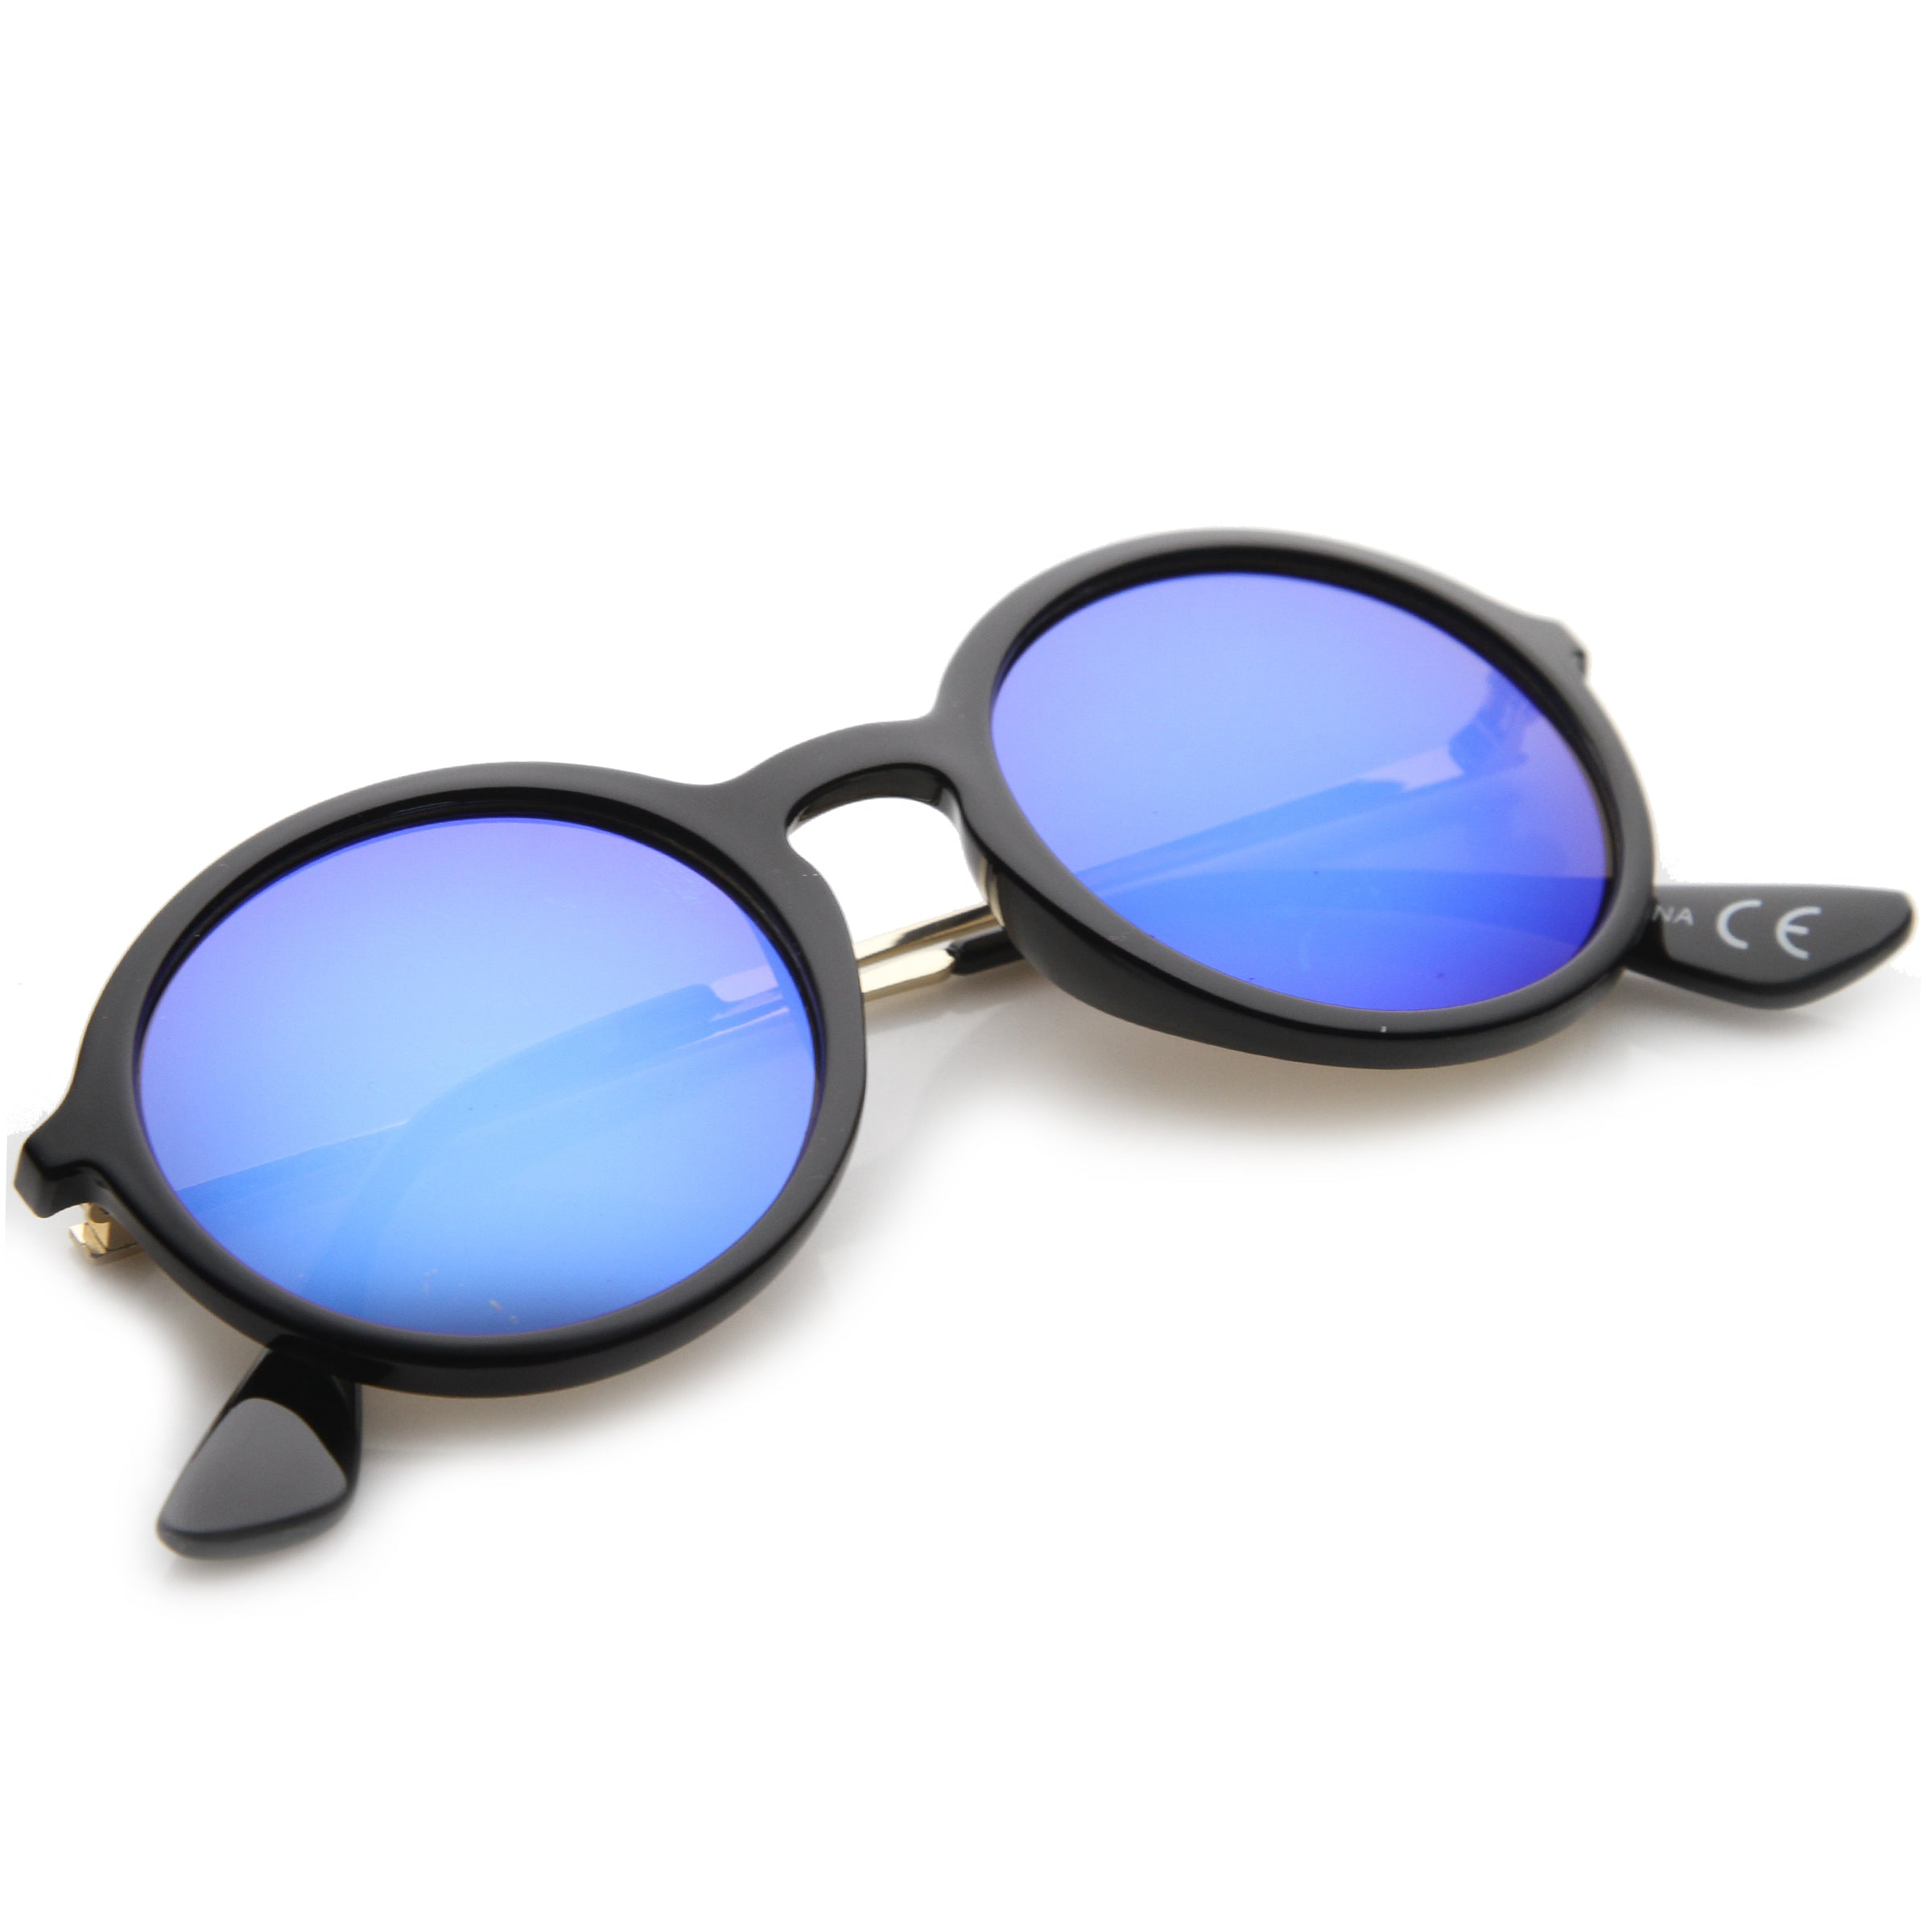 Mid Sized Modern Metal Temple Mirror Lens Round Sunglasses 49mm - sunglass.la - 4